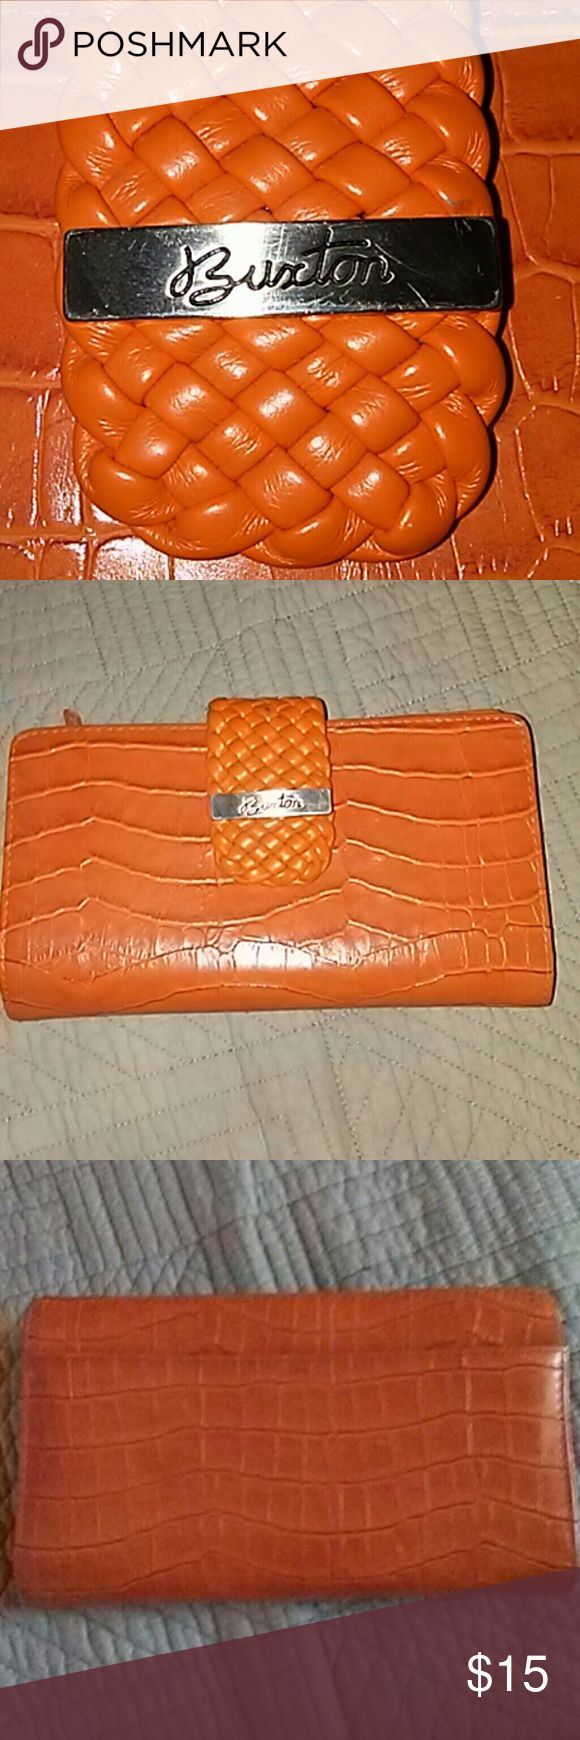 Buxton wallet Cute orange wallet. In great condition. Buxton Bags Wallets